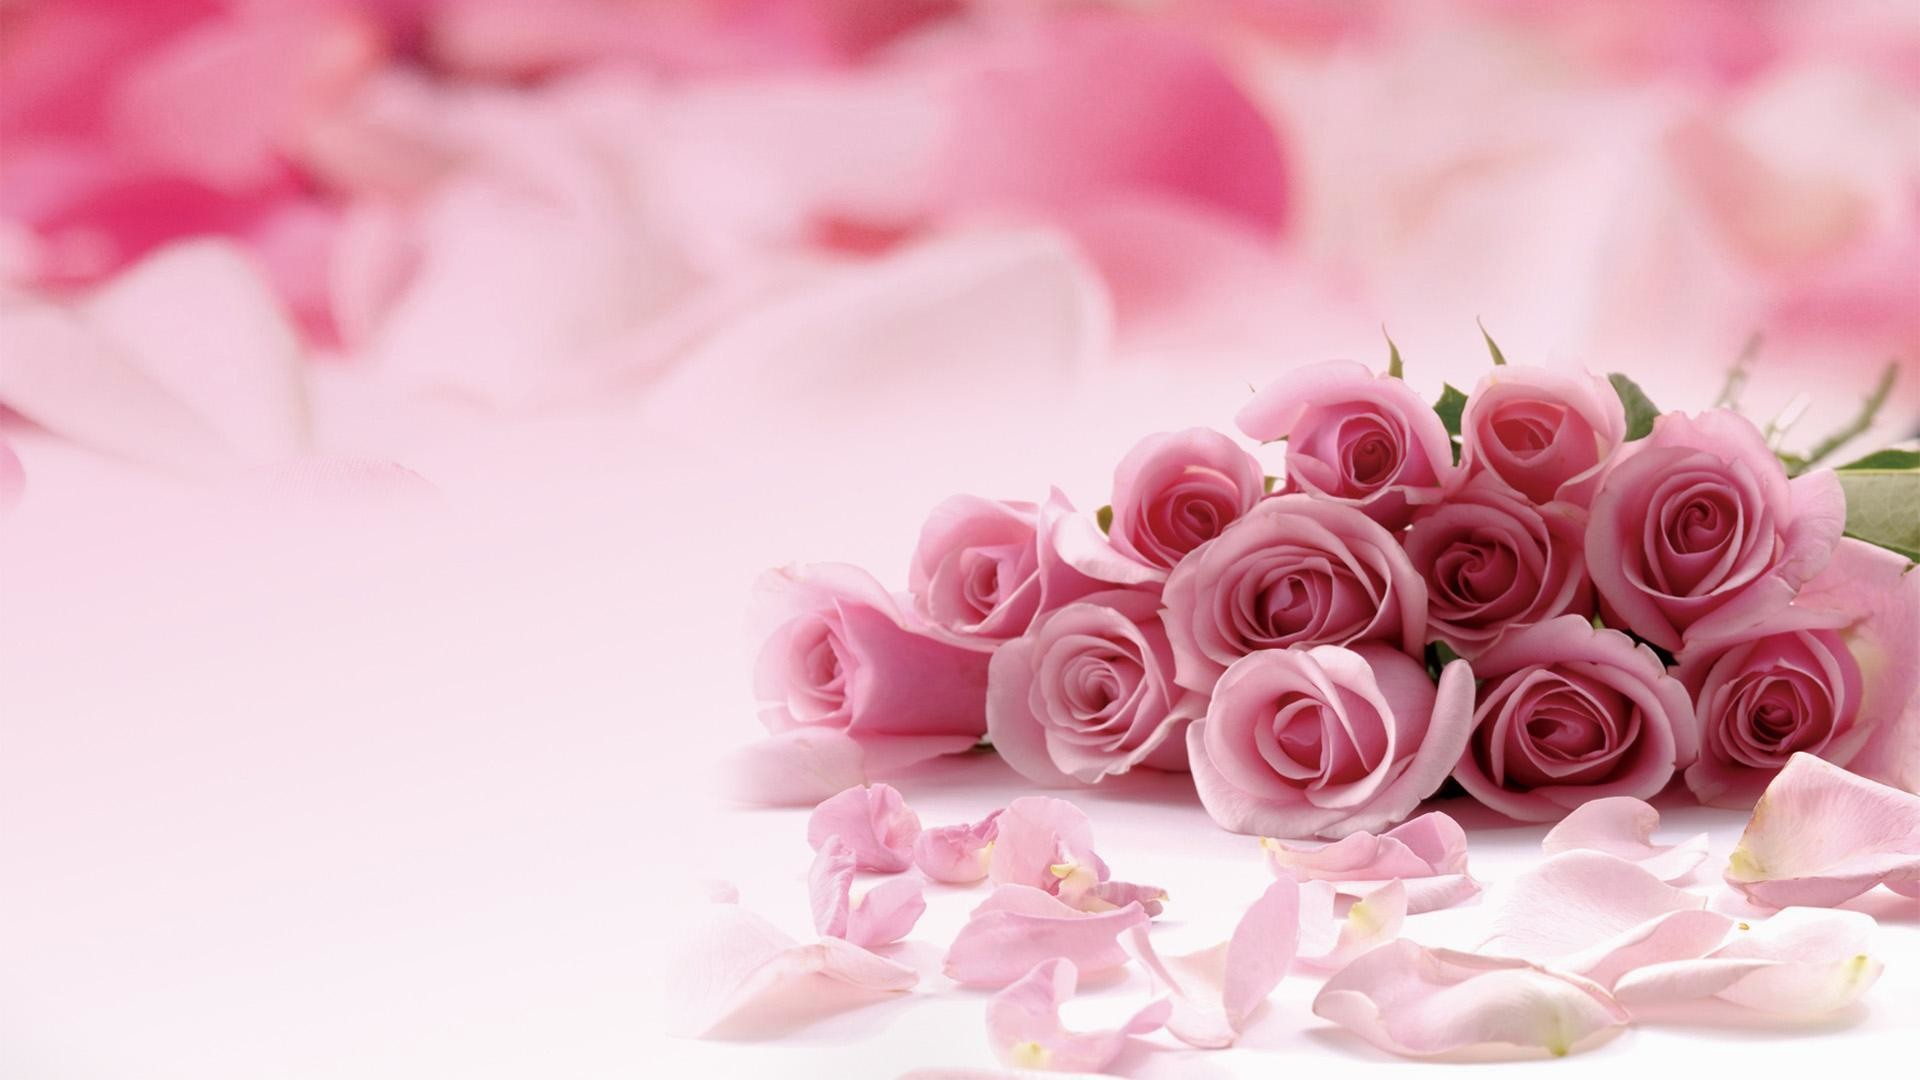 Cool-Pink-Iphone-Pictures-HD